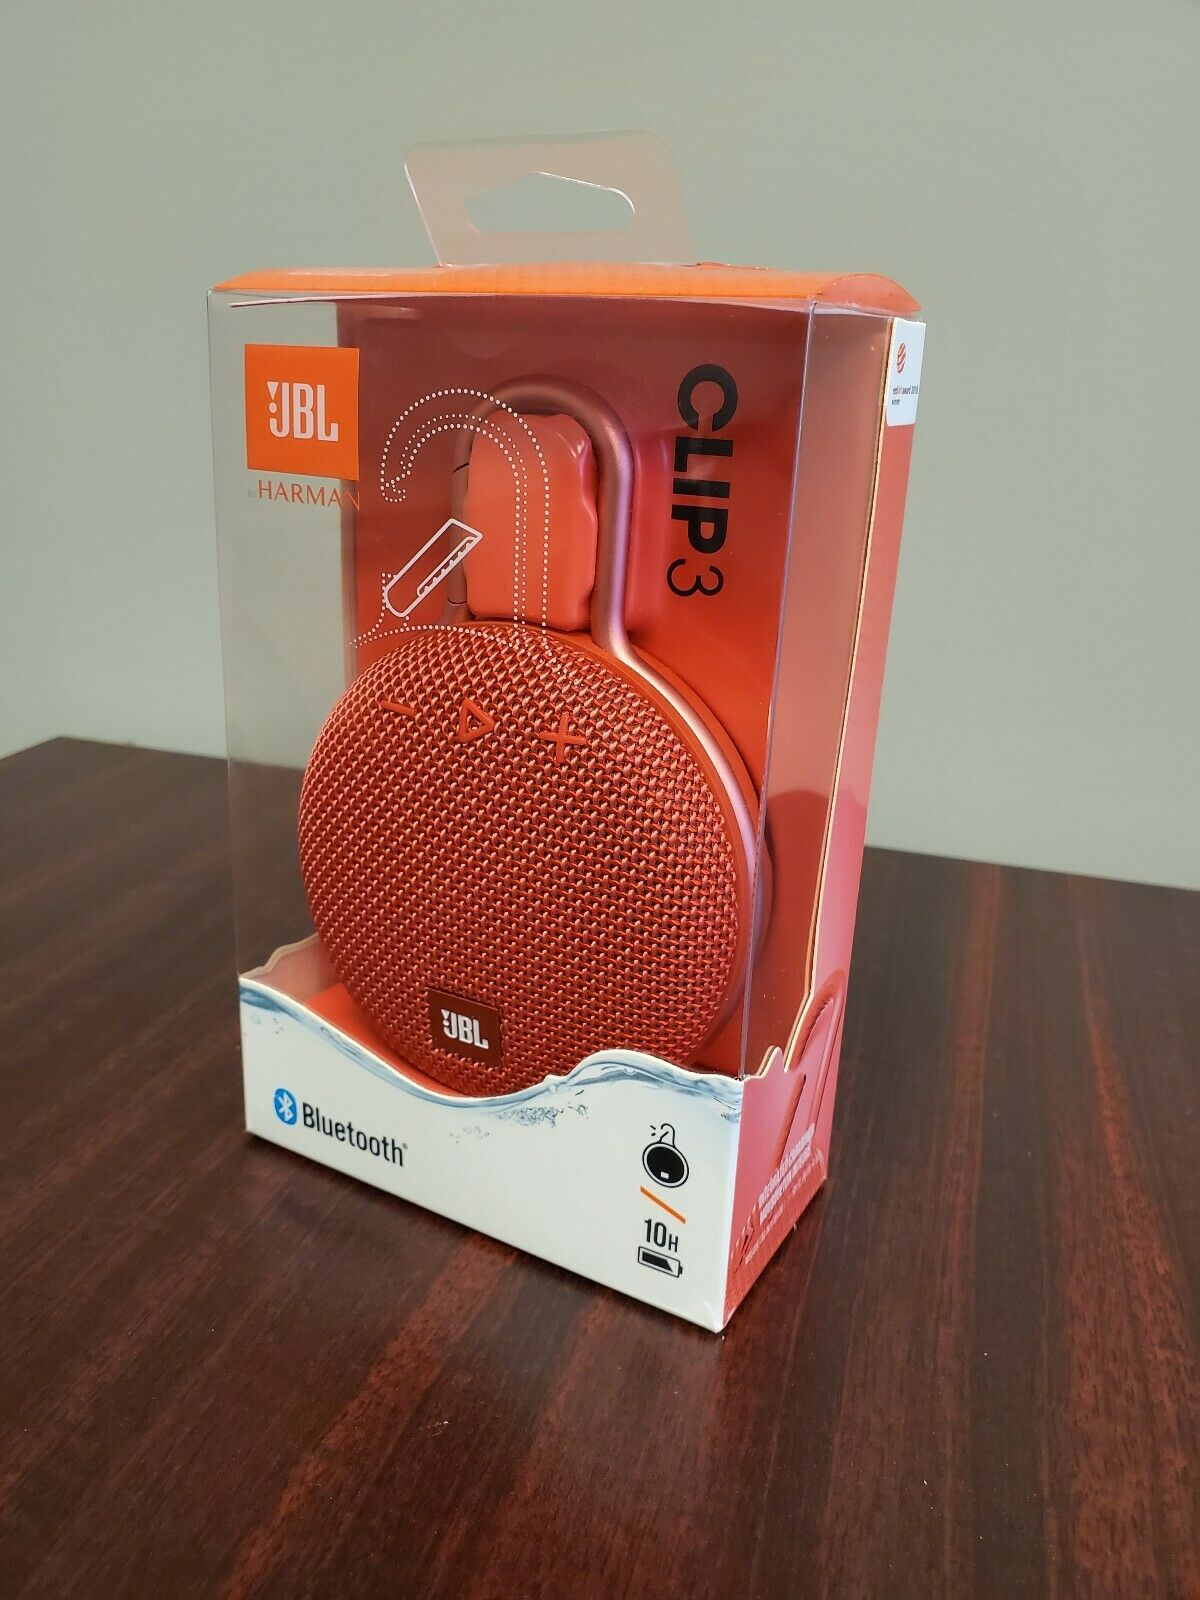 Jbl Clip 3 Rechargeable Waterproof Portable Bluetooth Speaker Wireless And Portable Speakers